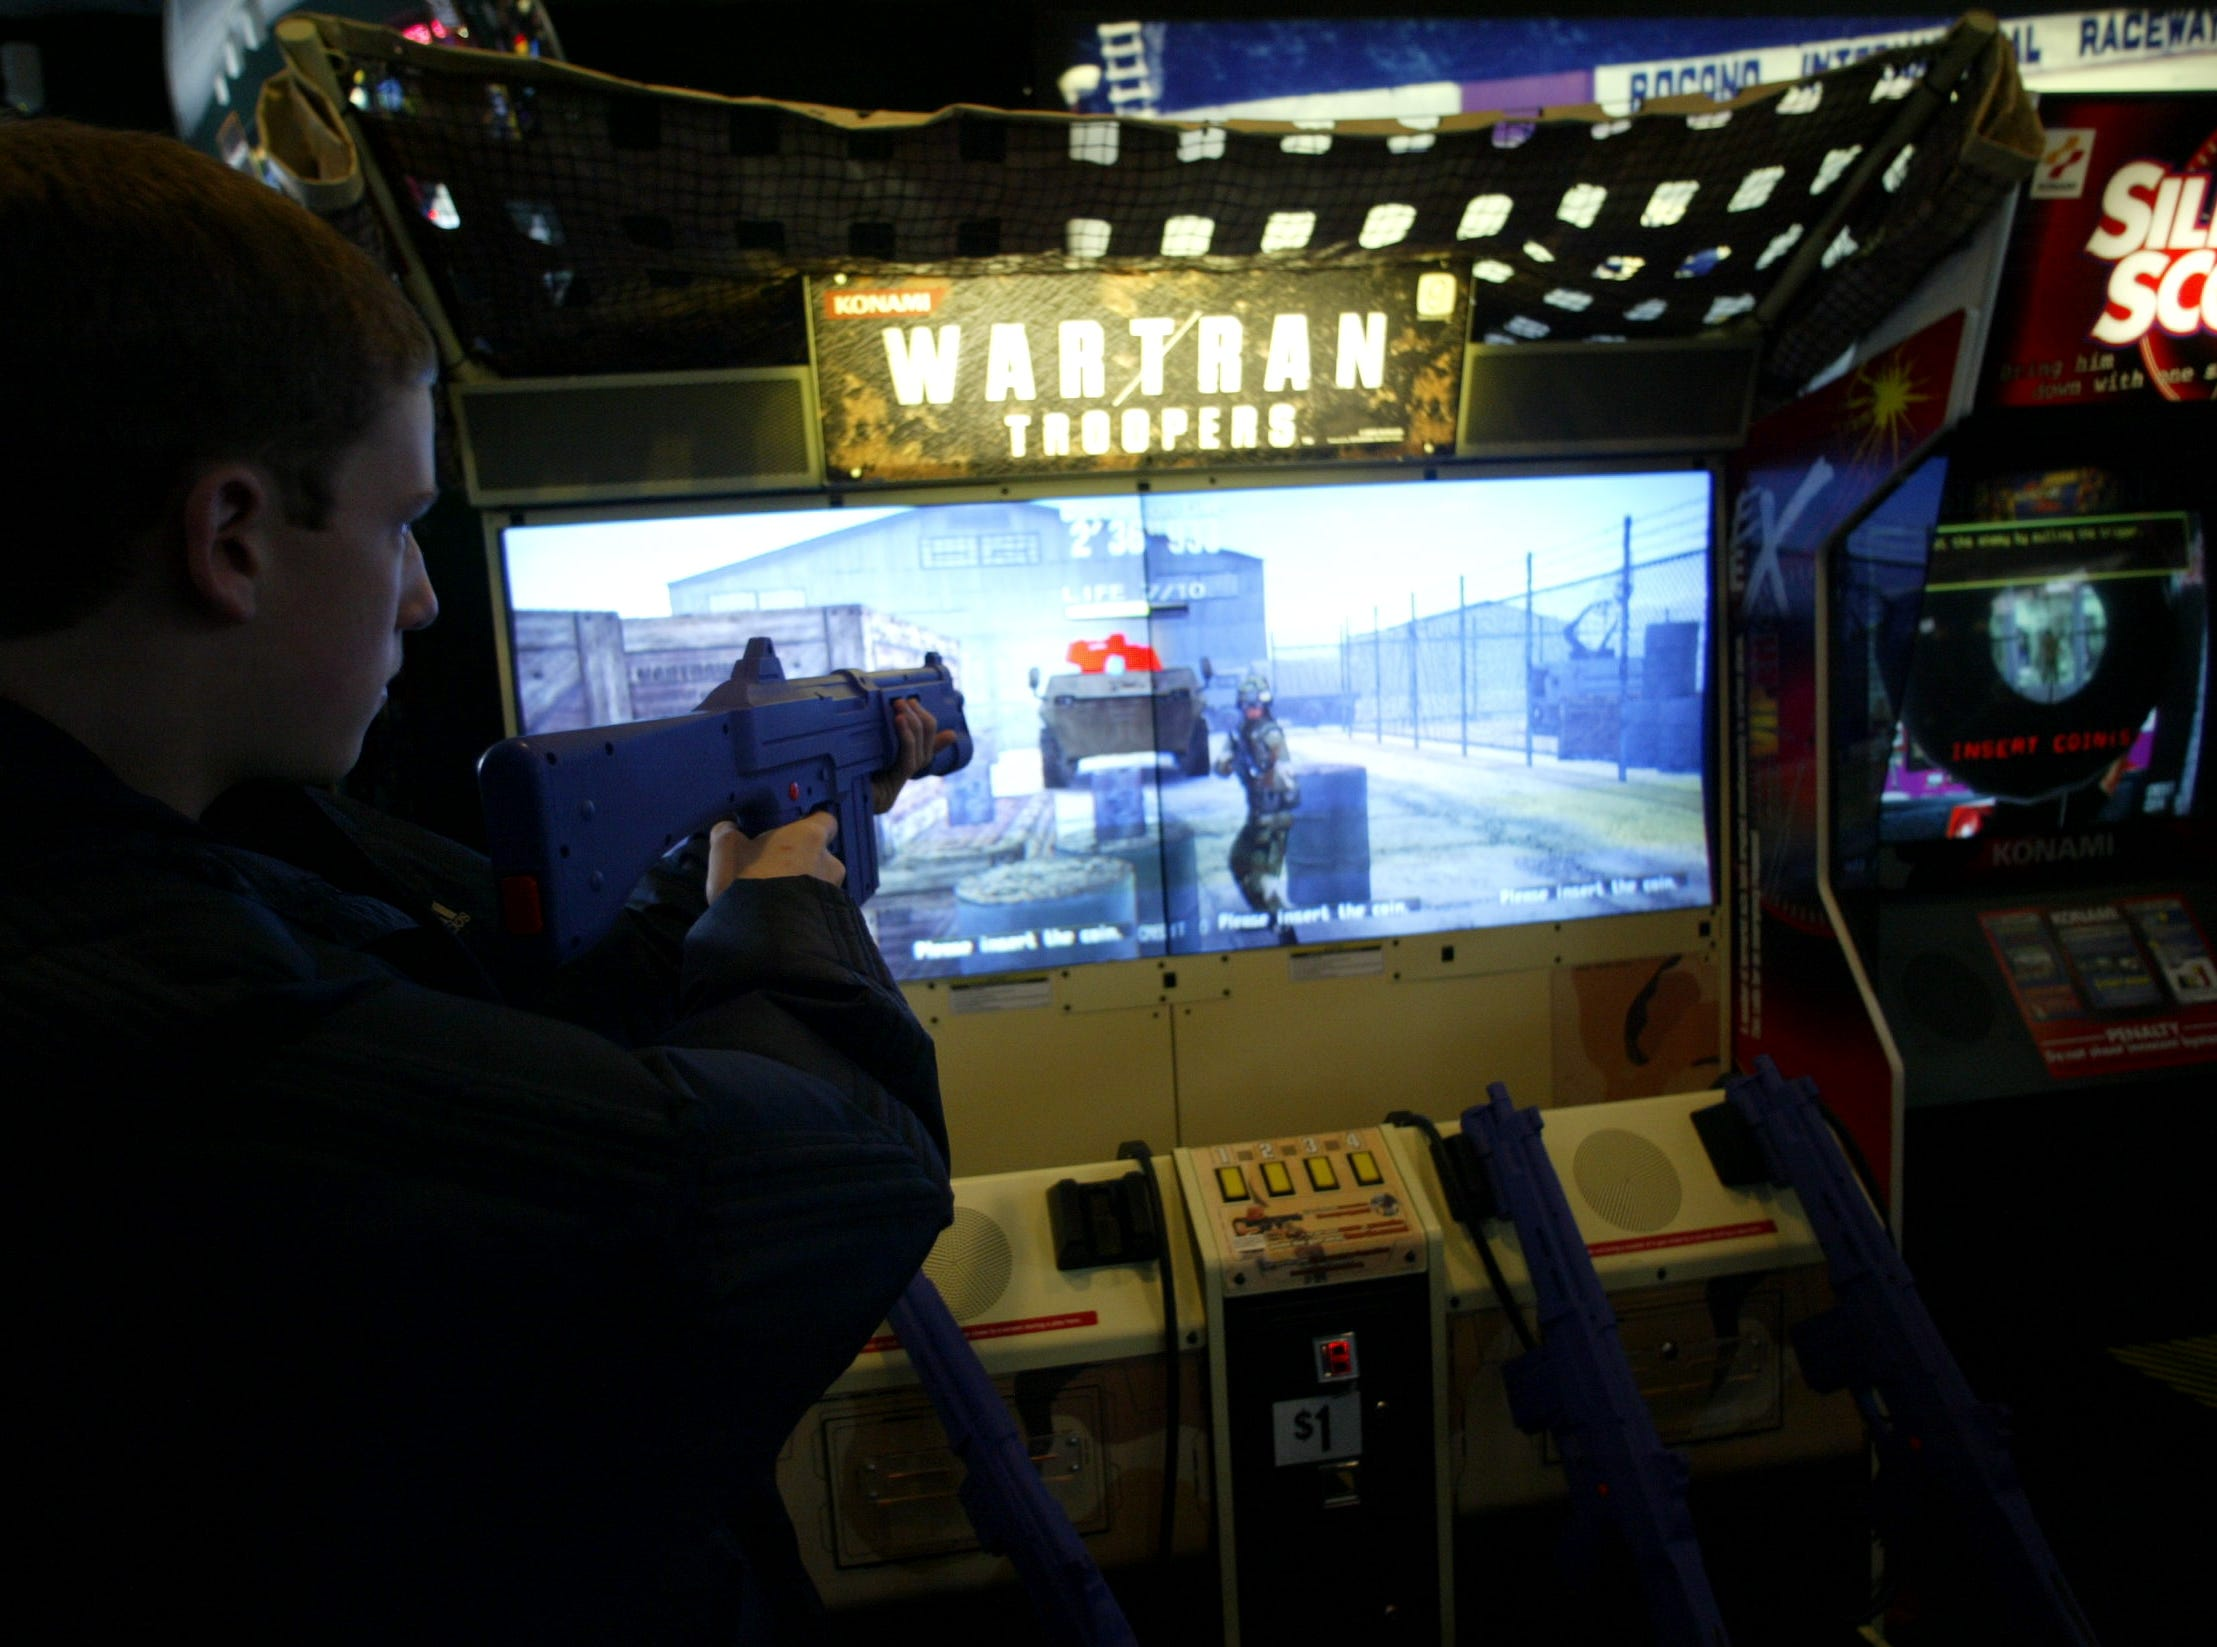 The Fun n' Games Arcade  at the Willowbrook Mall.  A player tries the Wartran game on December 20, 2003.